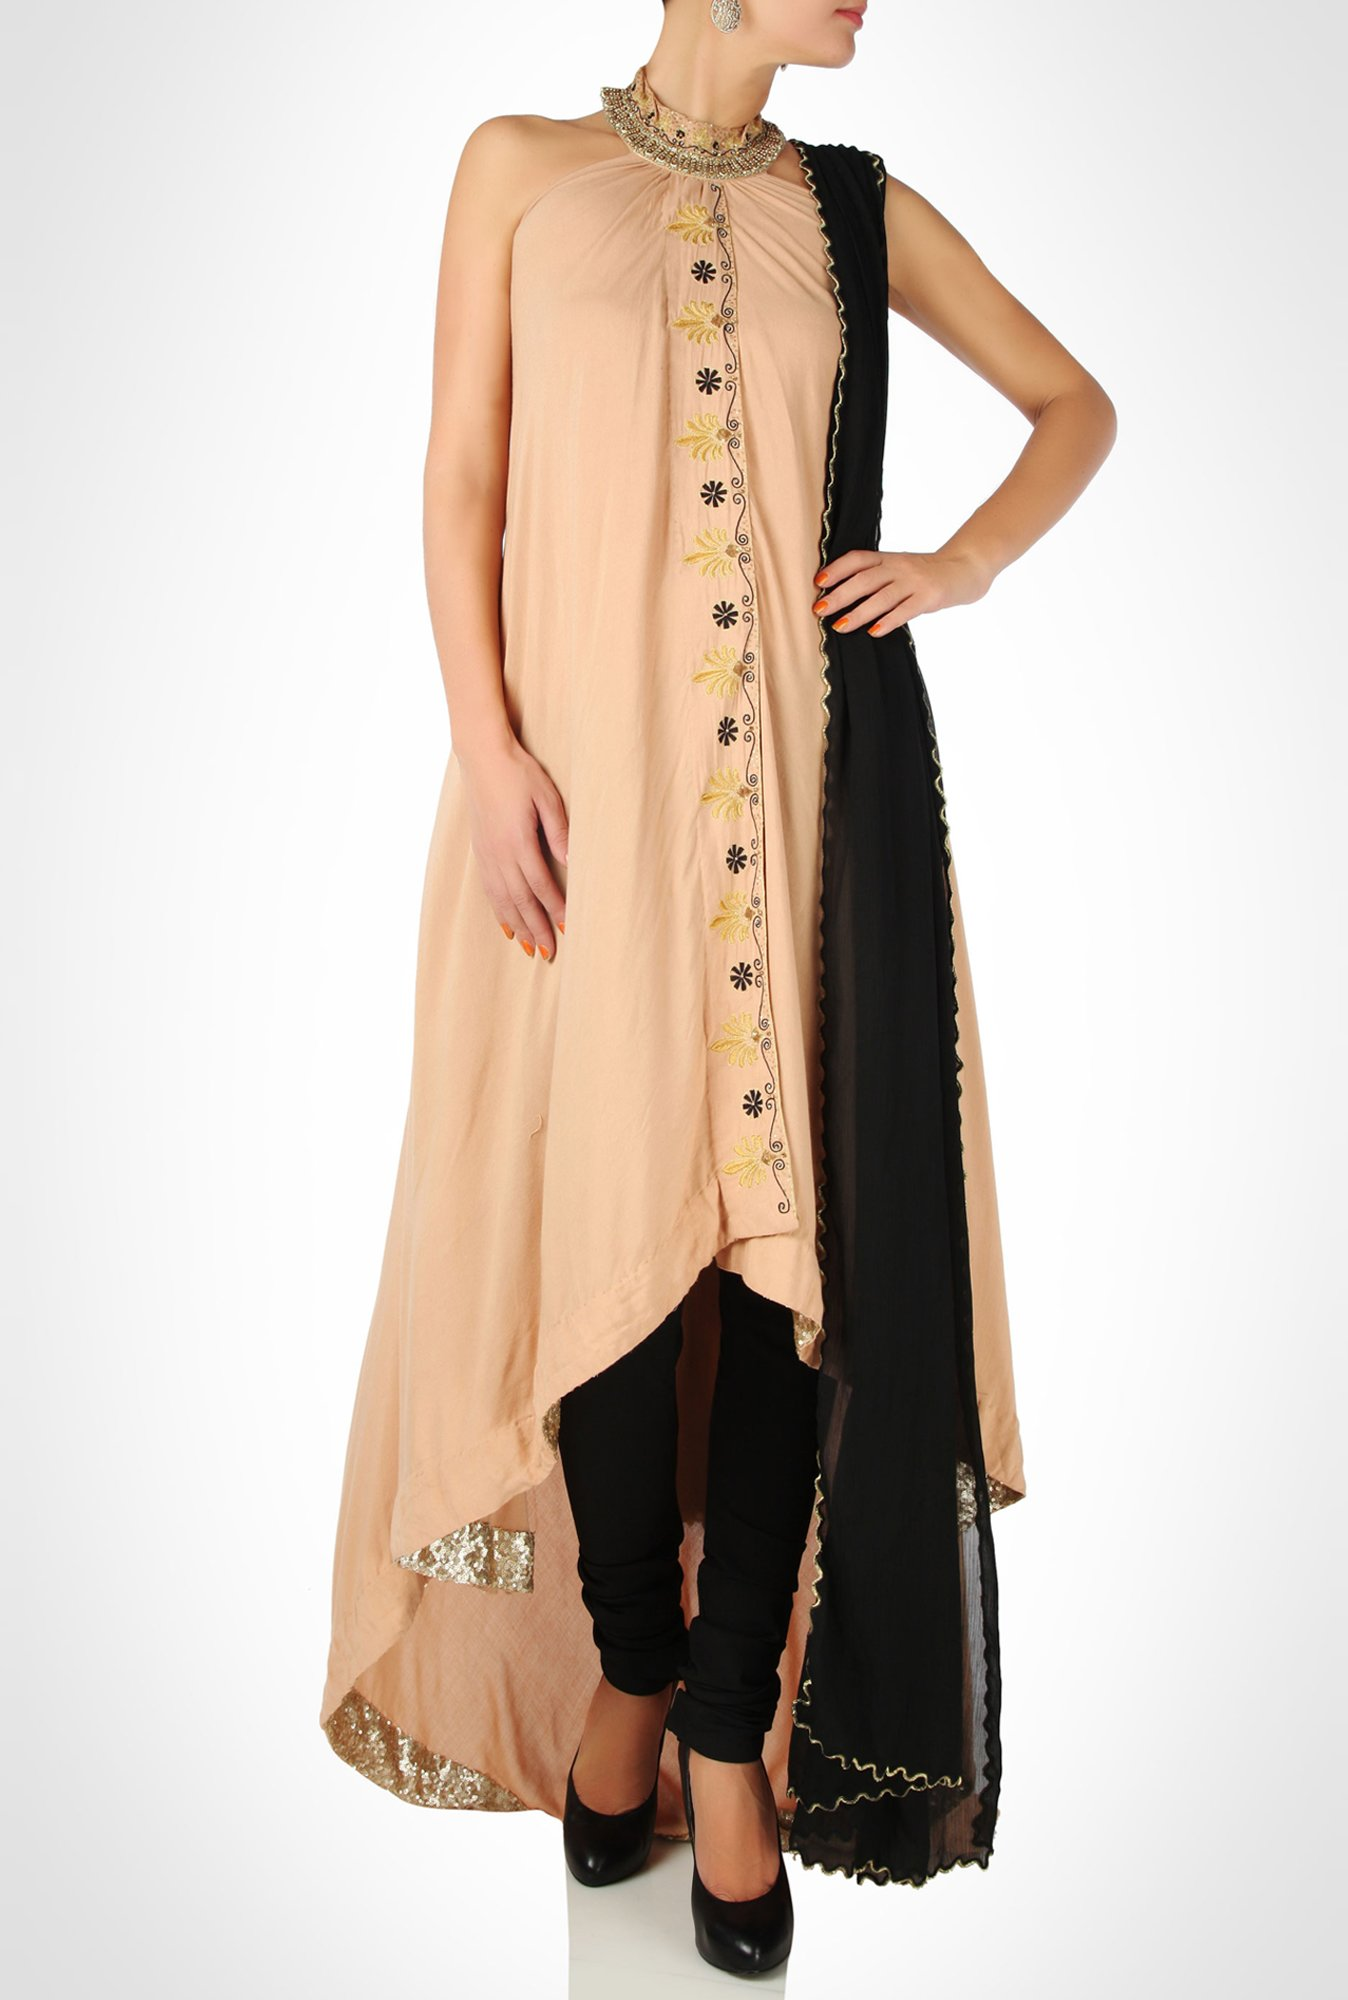 Anunakki Designer Wear Beige Suit Set by Kimaya